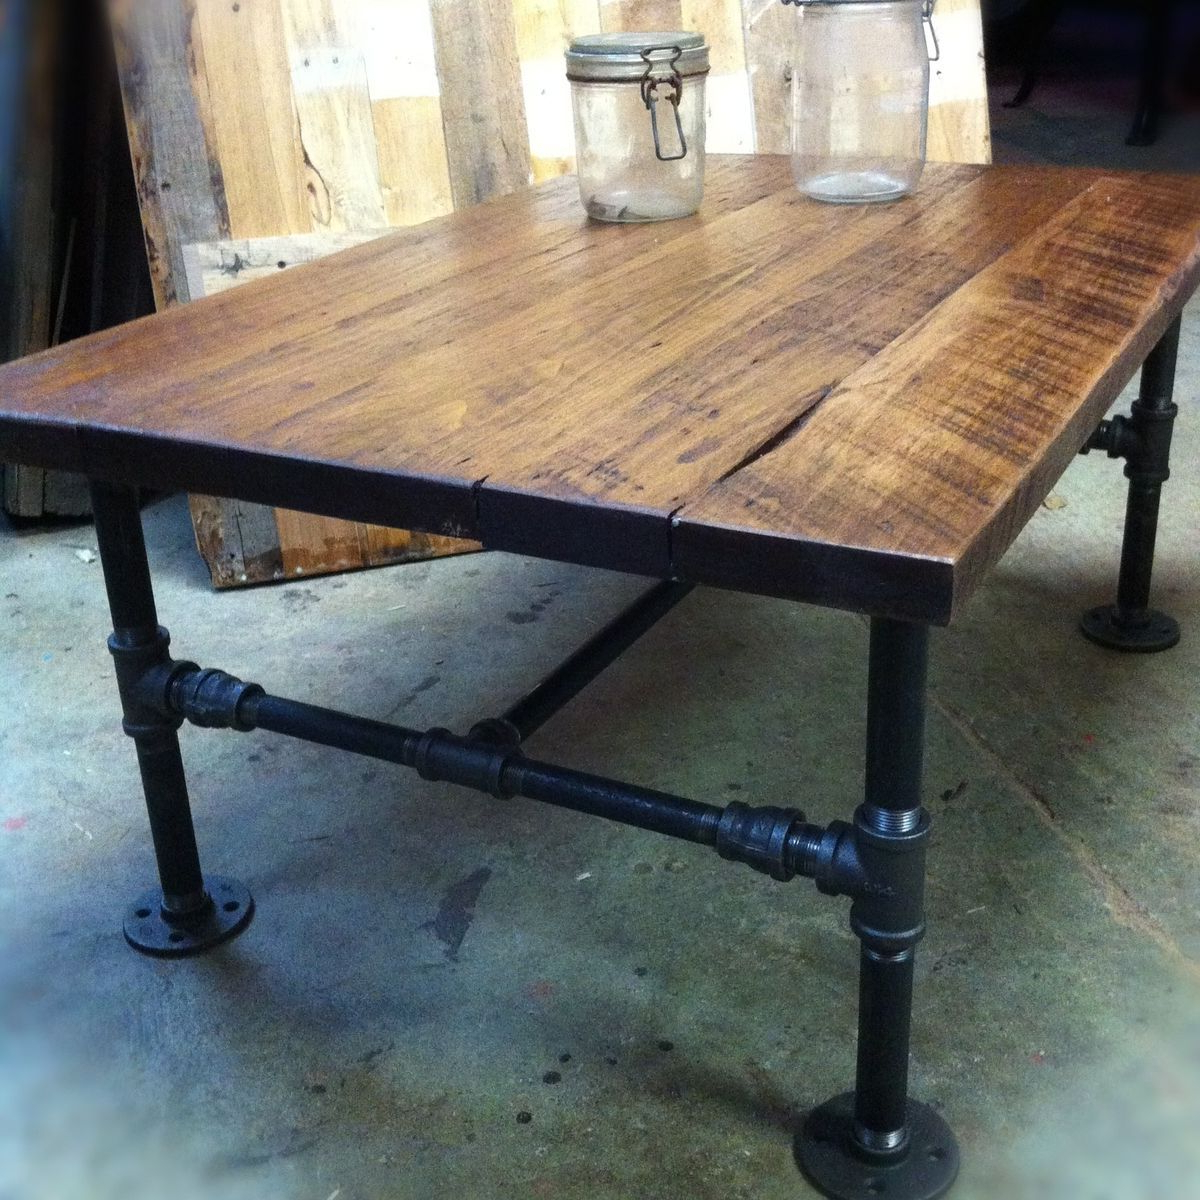 Reclaimed Elm Cast Iron Coffee Tables Throughout Most Recently Released Coffee Table Made From Reclaimed Wood And Black Iron Piping (Gallery 3 of 20)